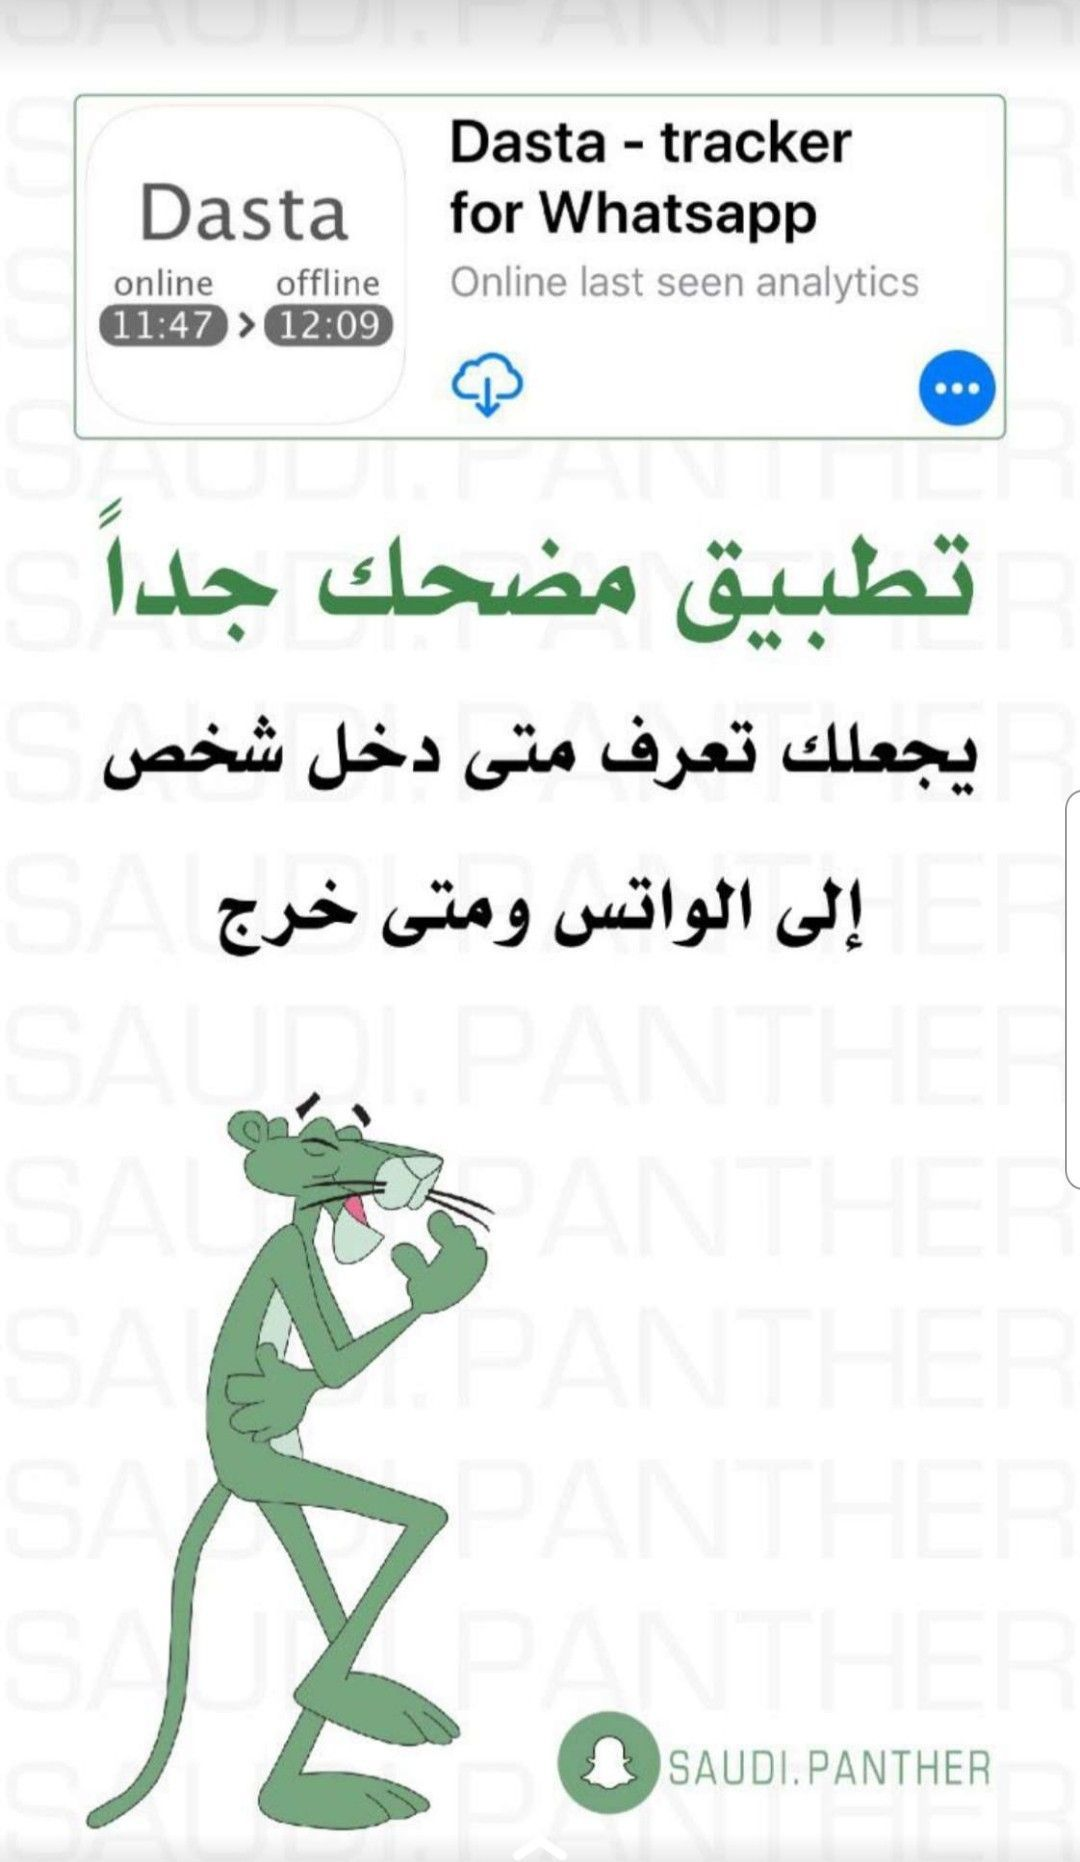 Pin by منوعات مفيدة on تطبيقات in 2020 Iphone app layout